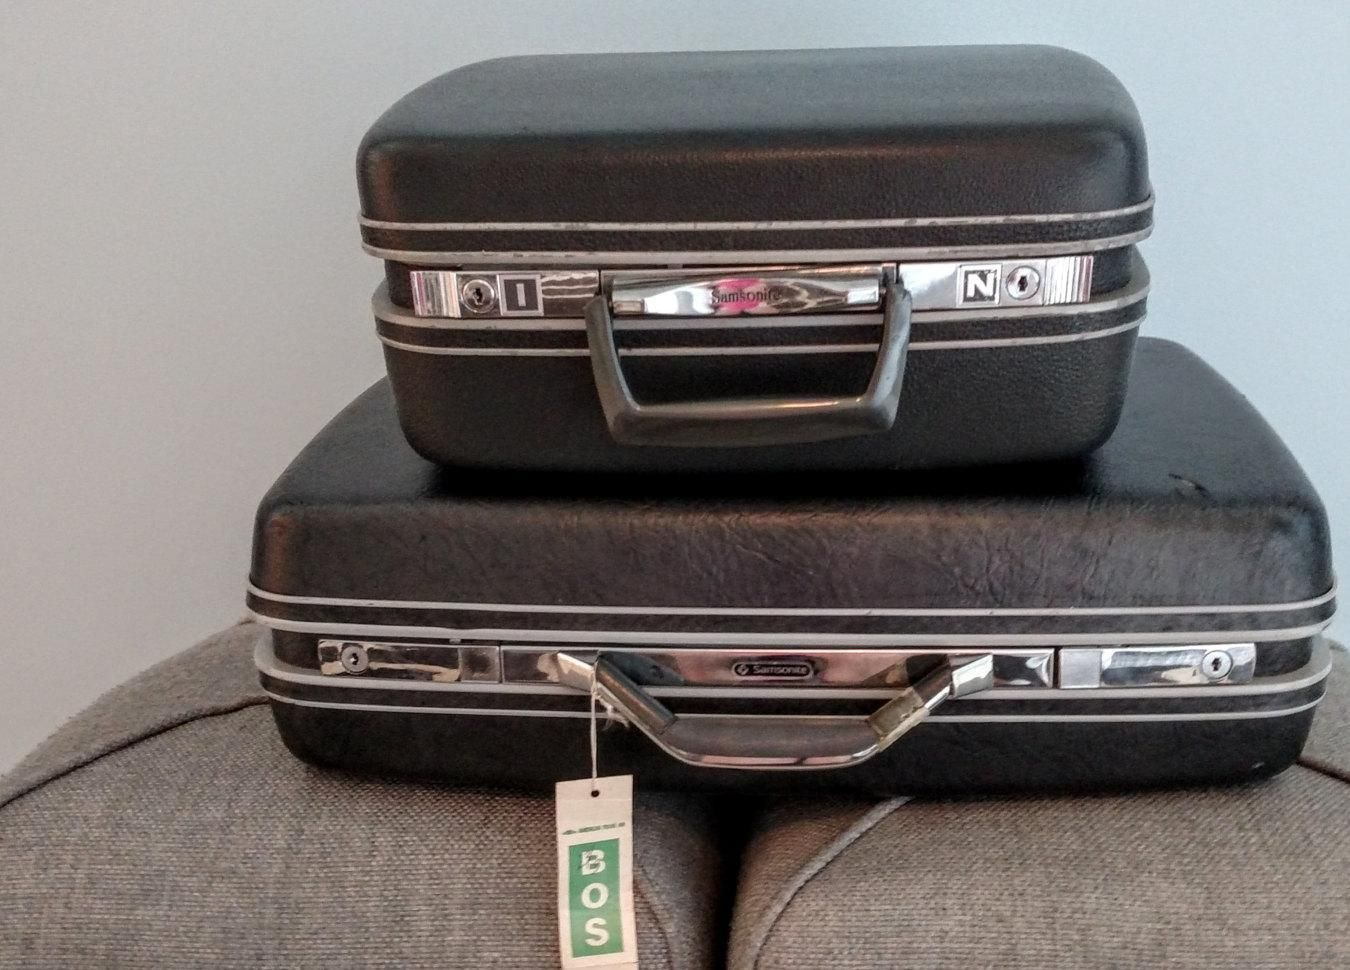 Luggage Set, Samsonite Lighweight Suitcases, Glamping, Vintage Camping Gear, Travel, Home Decor - http://oleantravel.com/luggage-set-samsonite-lighweight-suitcases-glamping-vintage-camping-gear-travel-home-decor